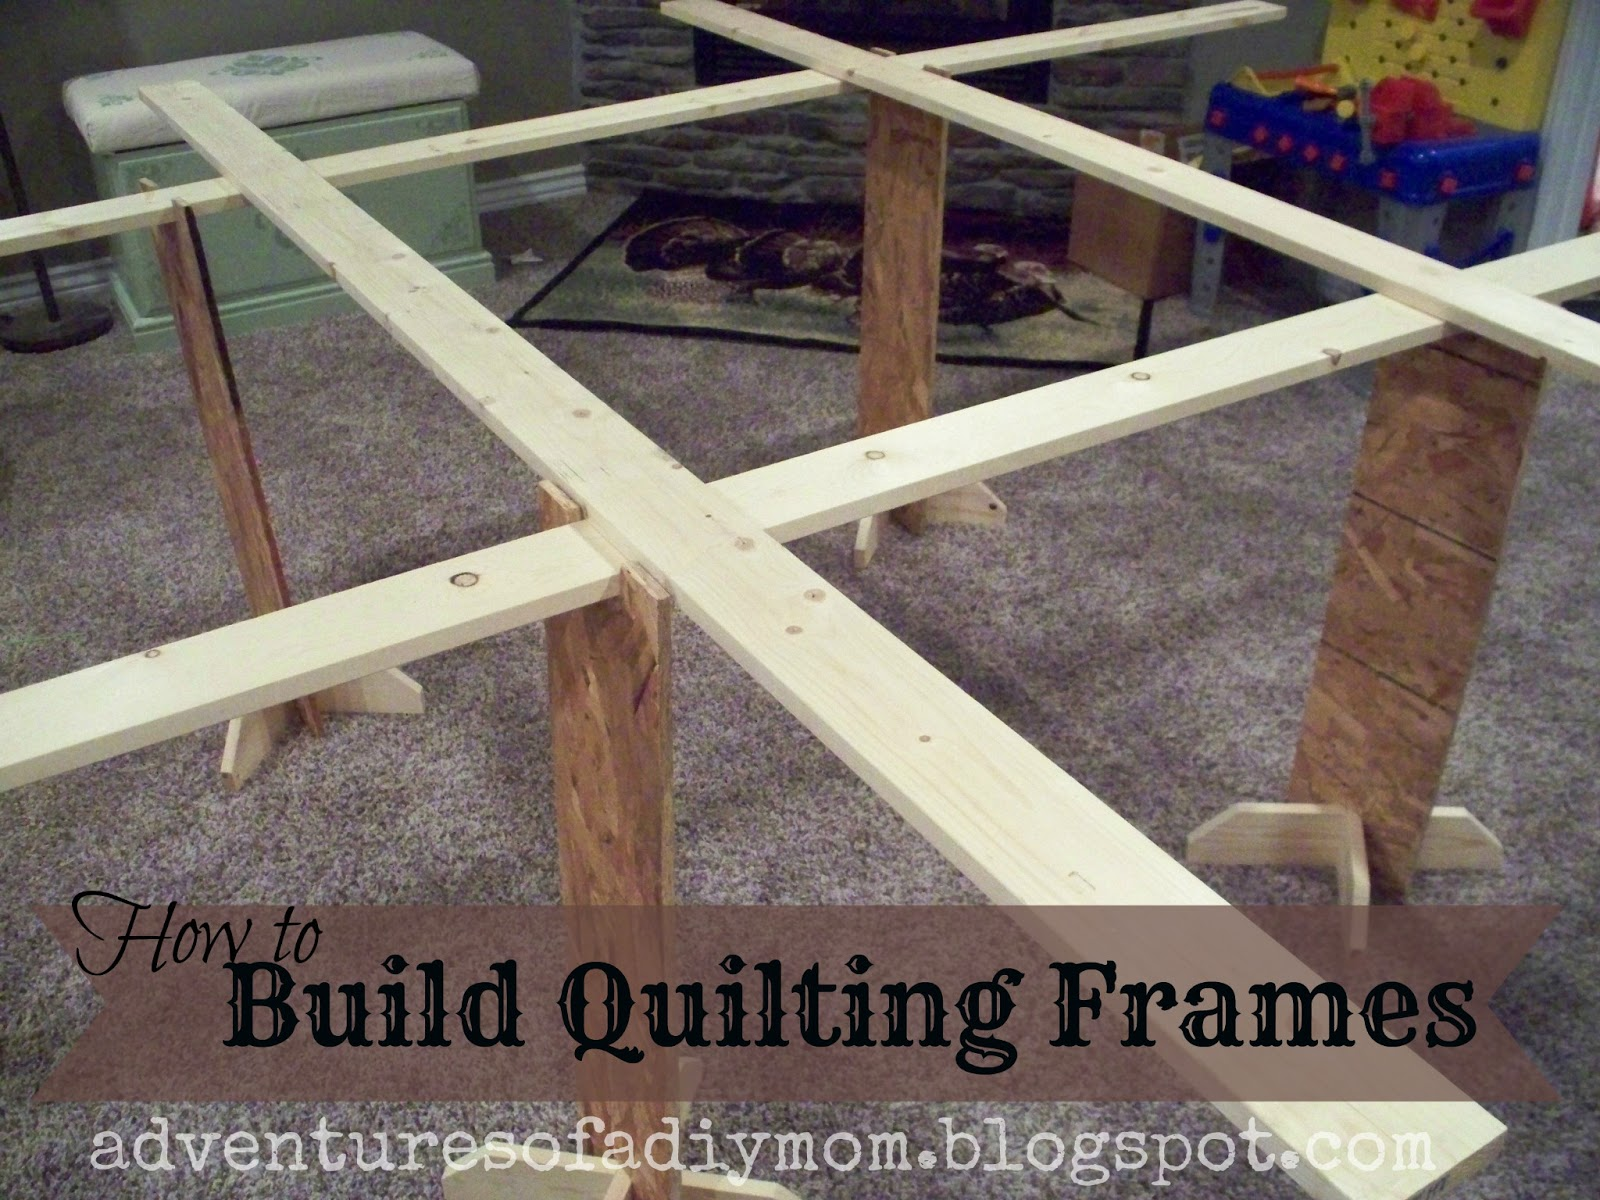 Build Your Own Quilting Frames - Adventures of a DIY Mom